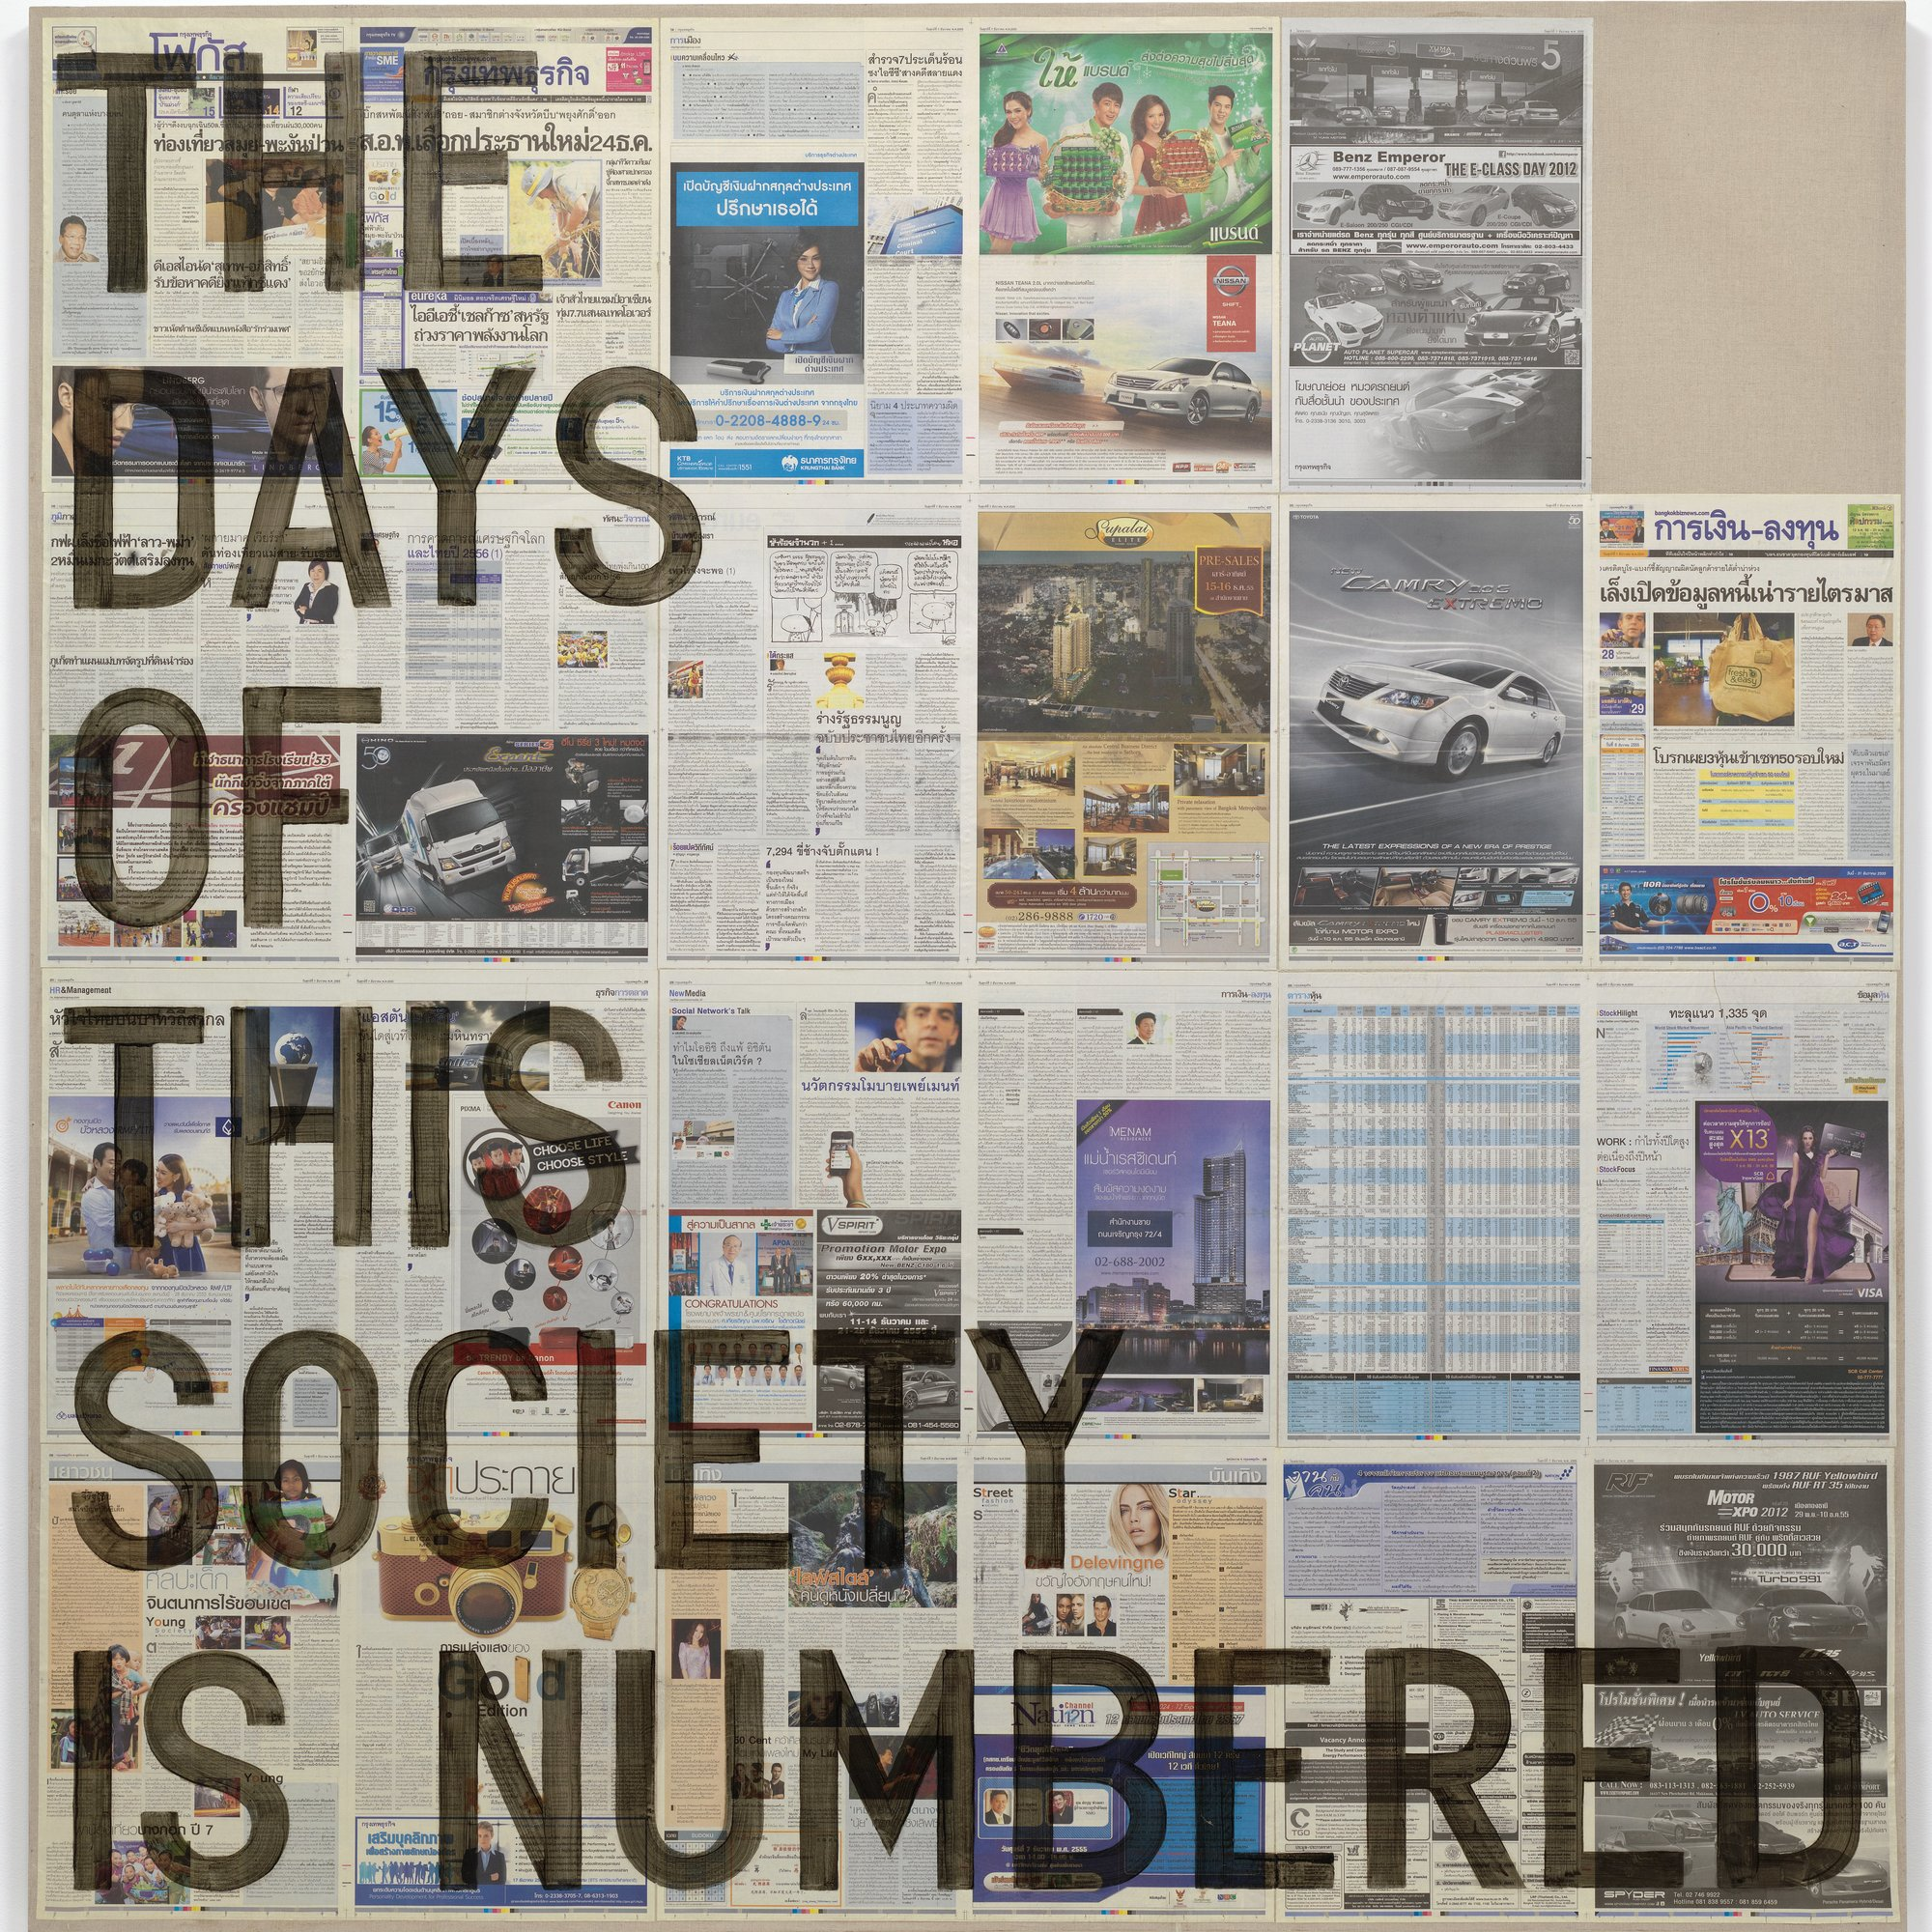 Rirkrit Tiravanija (Thai, born Argentina 1961). untitled (the days of this society is numbered / December 7, 2012). 2014. Synthetic polymer paint and newspaper on linen, 87 × 84 1/2″ (221 × 214.6 cm). The Museum of Modern Art, New York. Committee on Drawings and Prints Fund, 2014. © 2015 Rirkrit Tiravanija